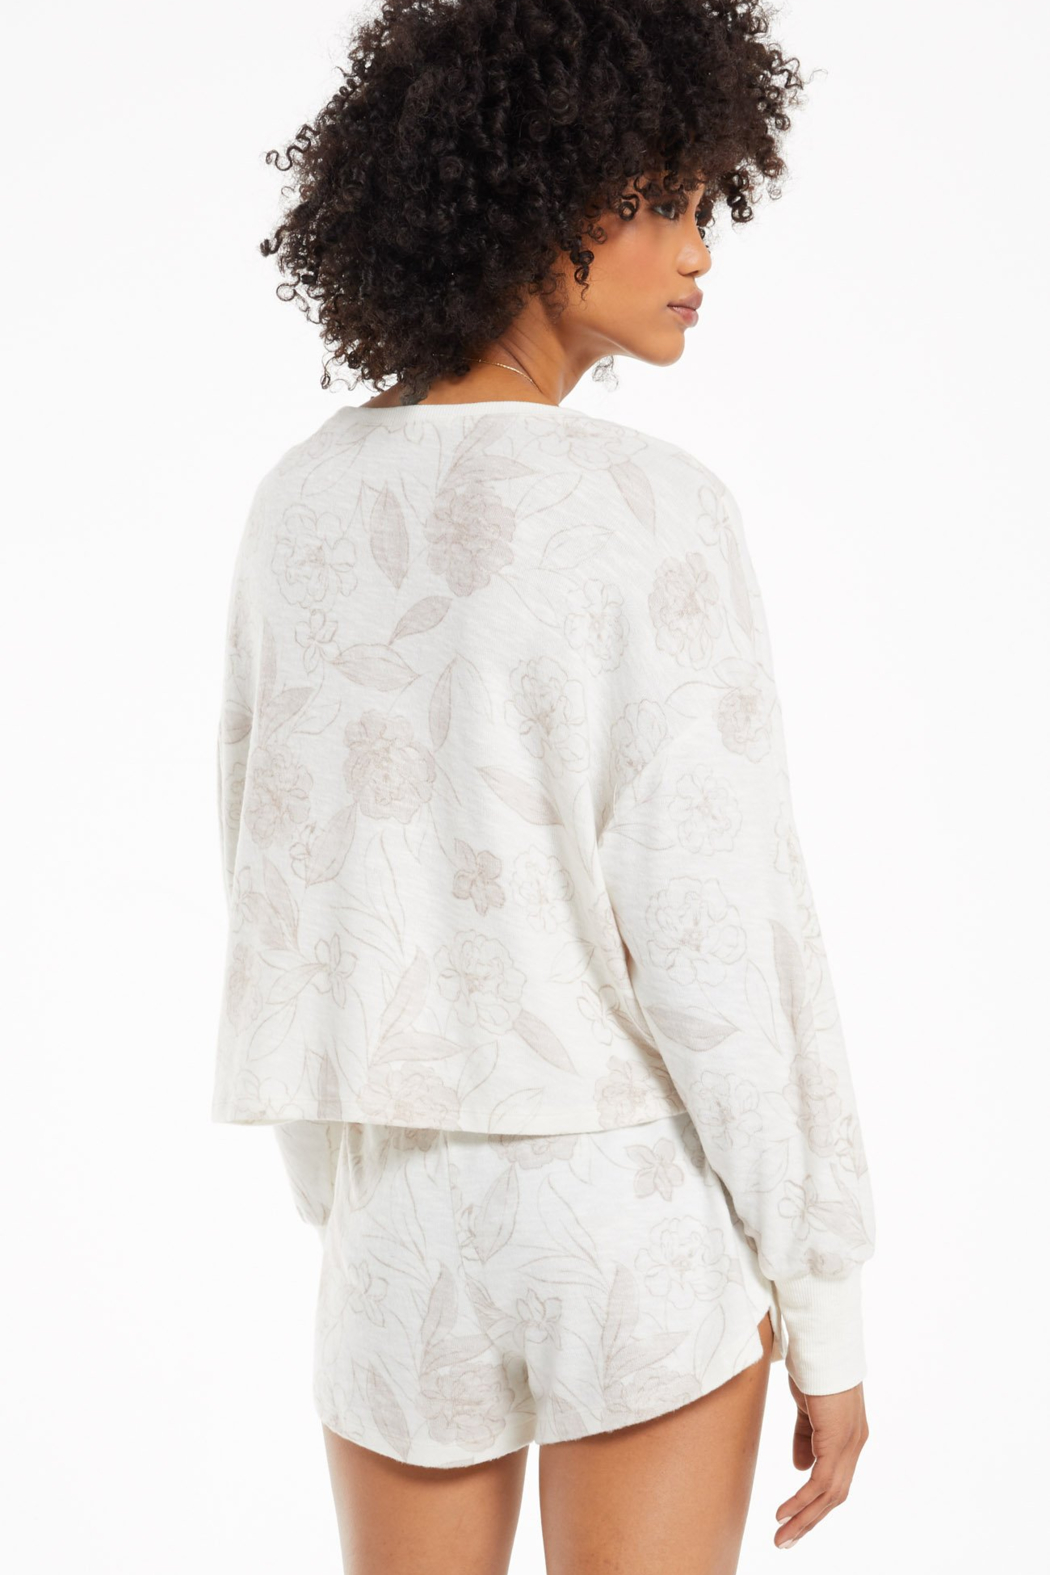 z supply Z Supply L/S Lina Floral Top - Front Full Image